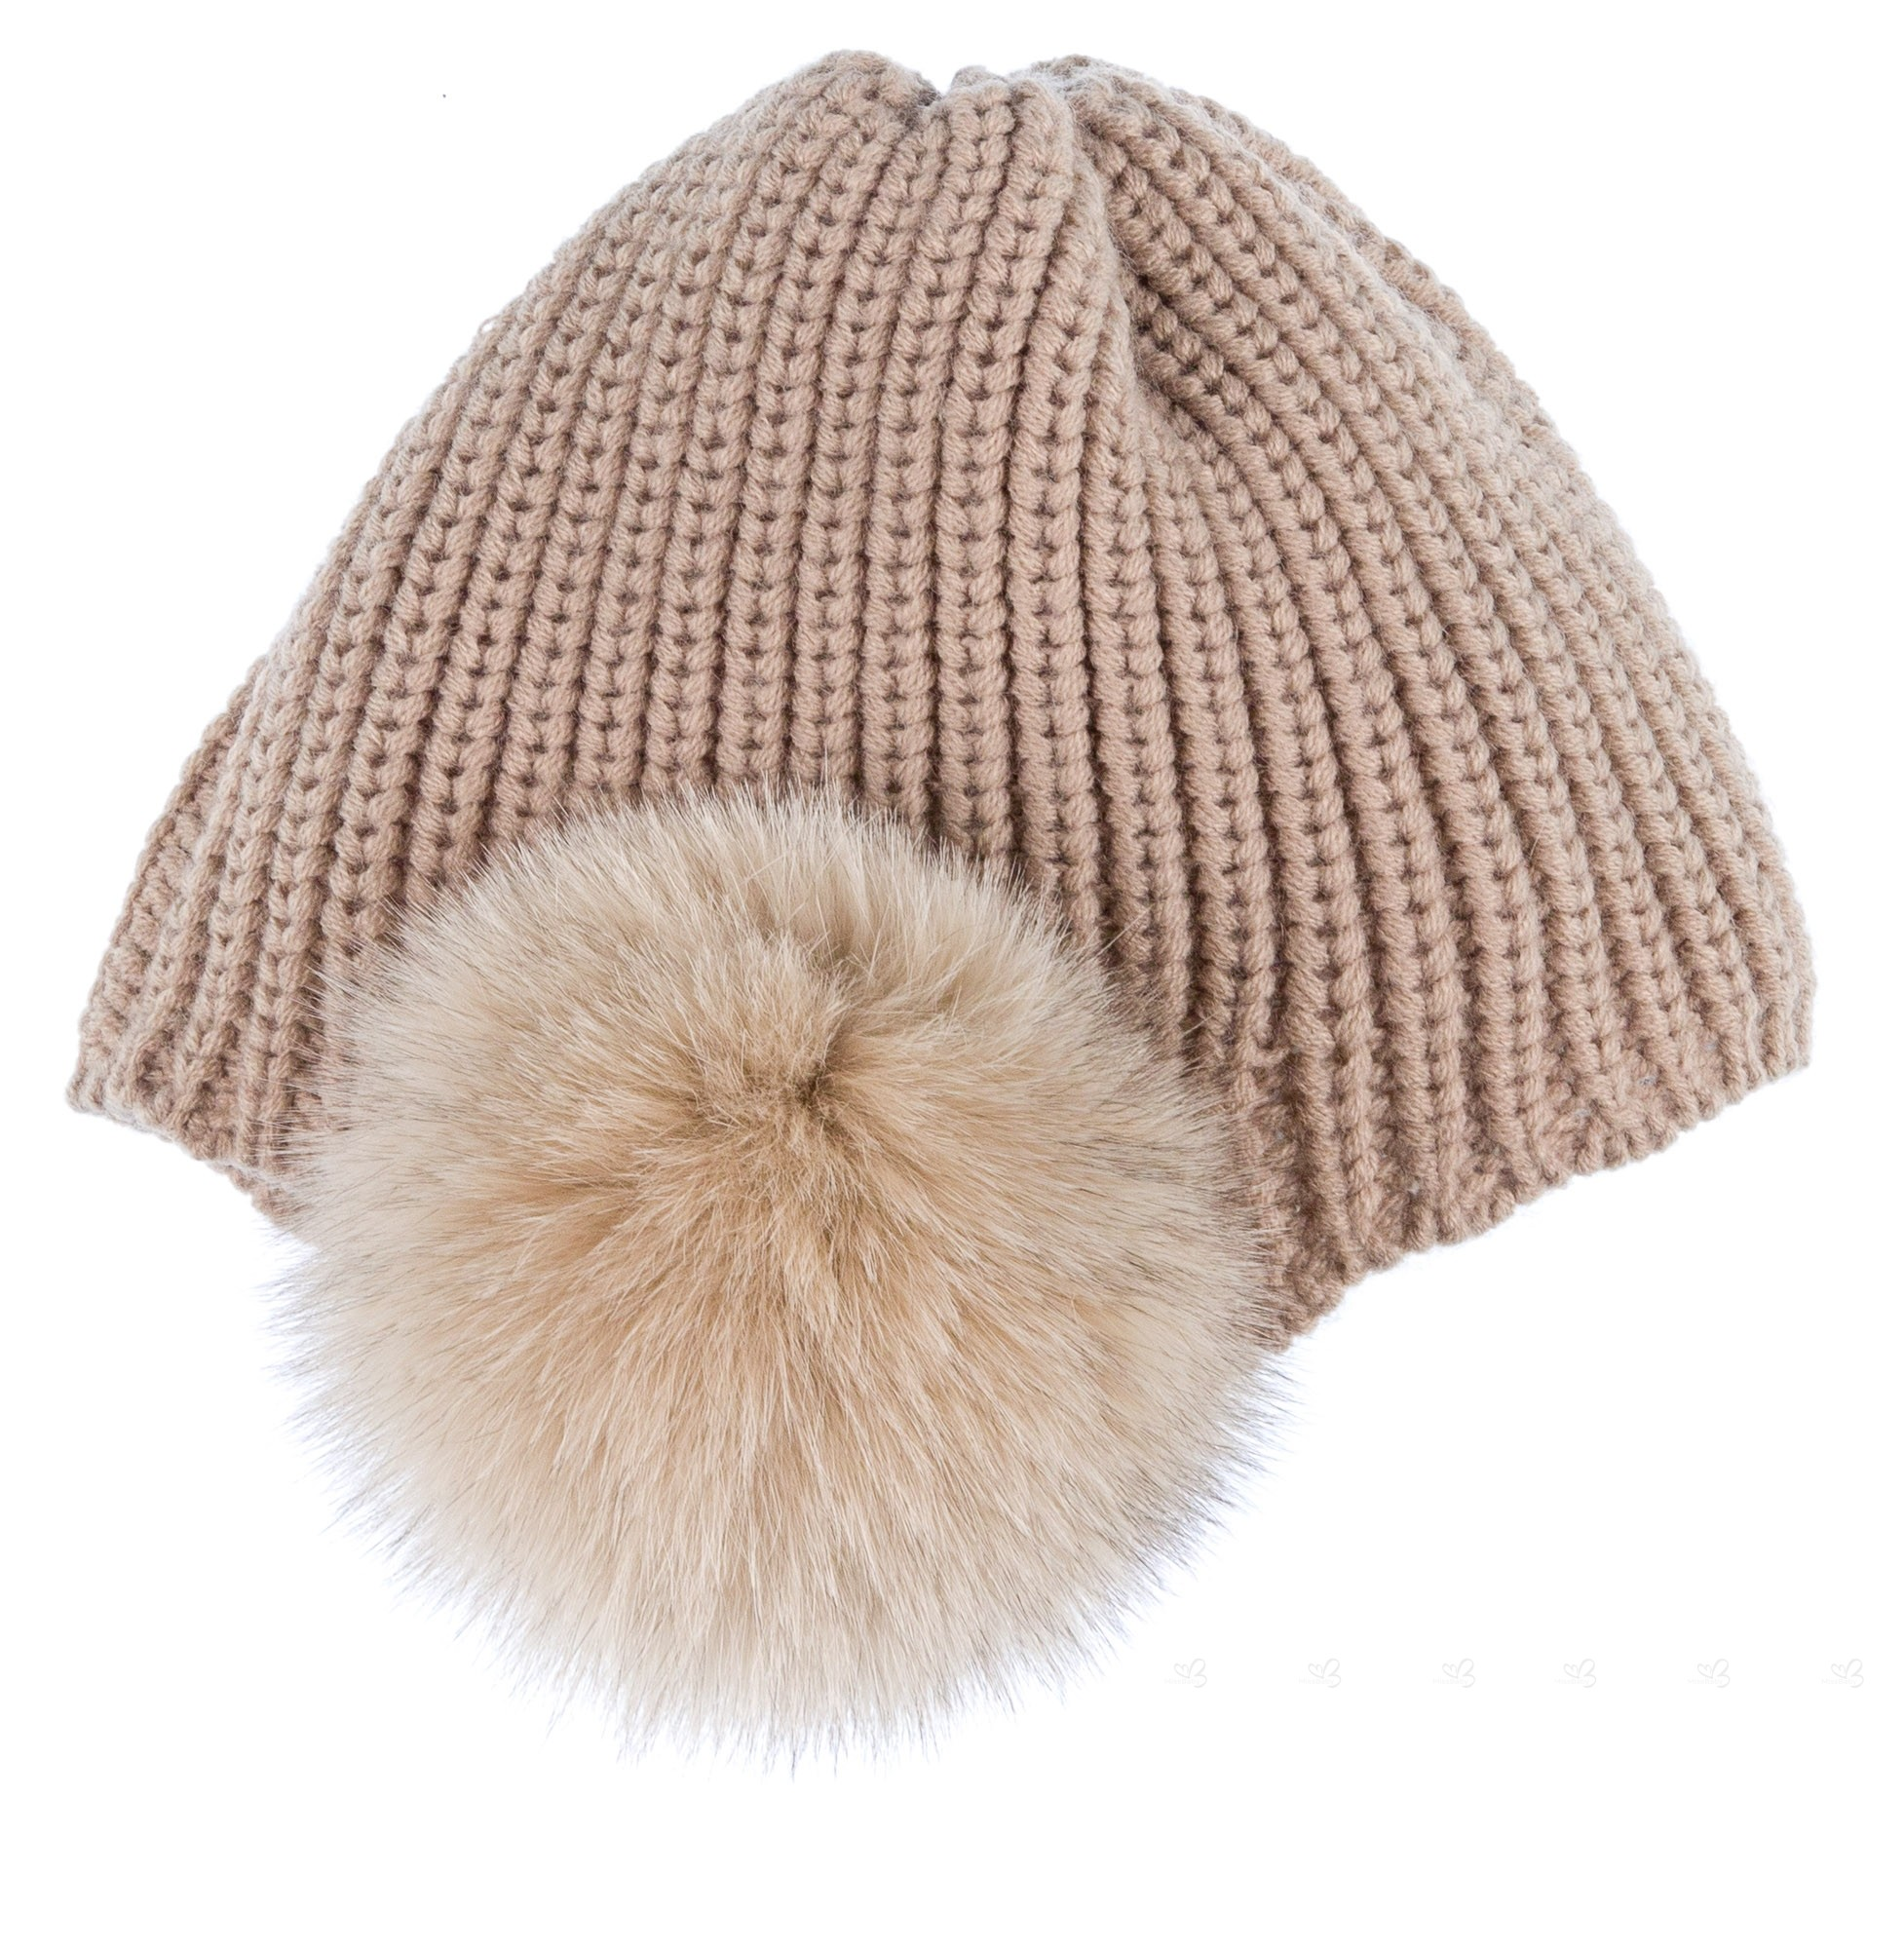 César Blanco Girls Beige Knitted Hat   Synthetic Fur Pom-Poms  a699b7dc51a